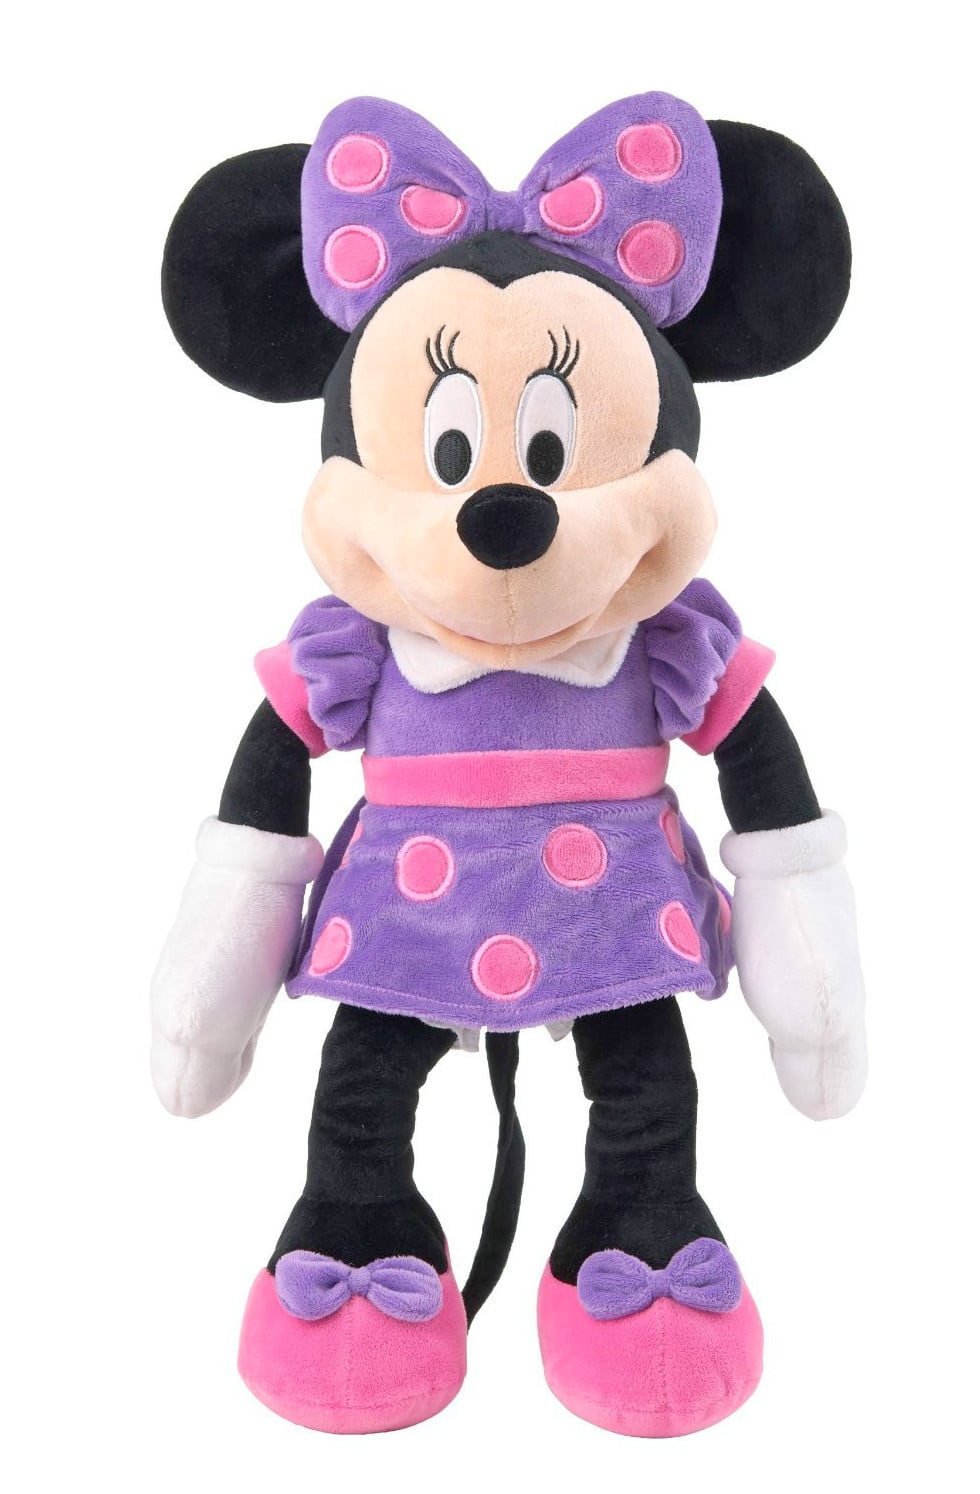 Minnie Mouse Baby Toy Design